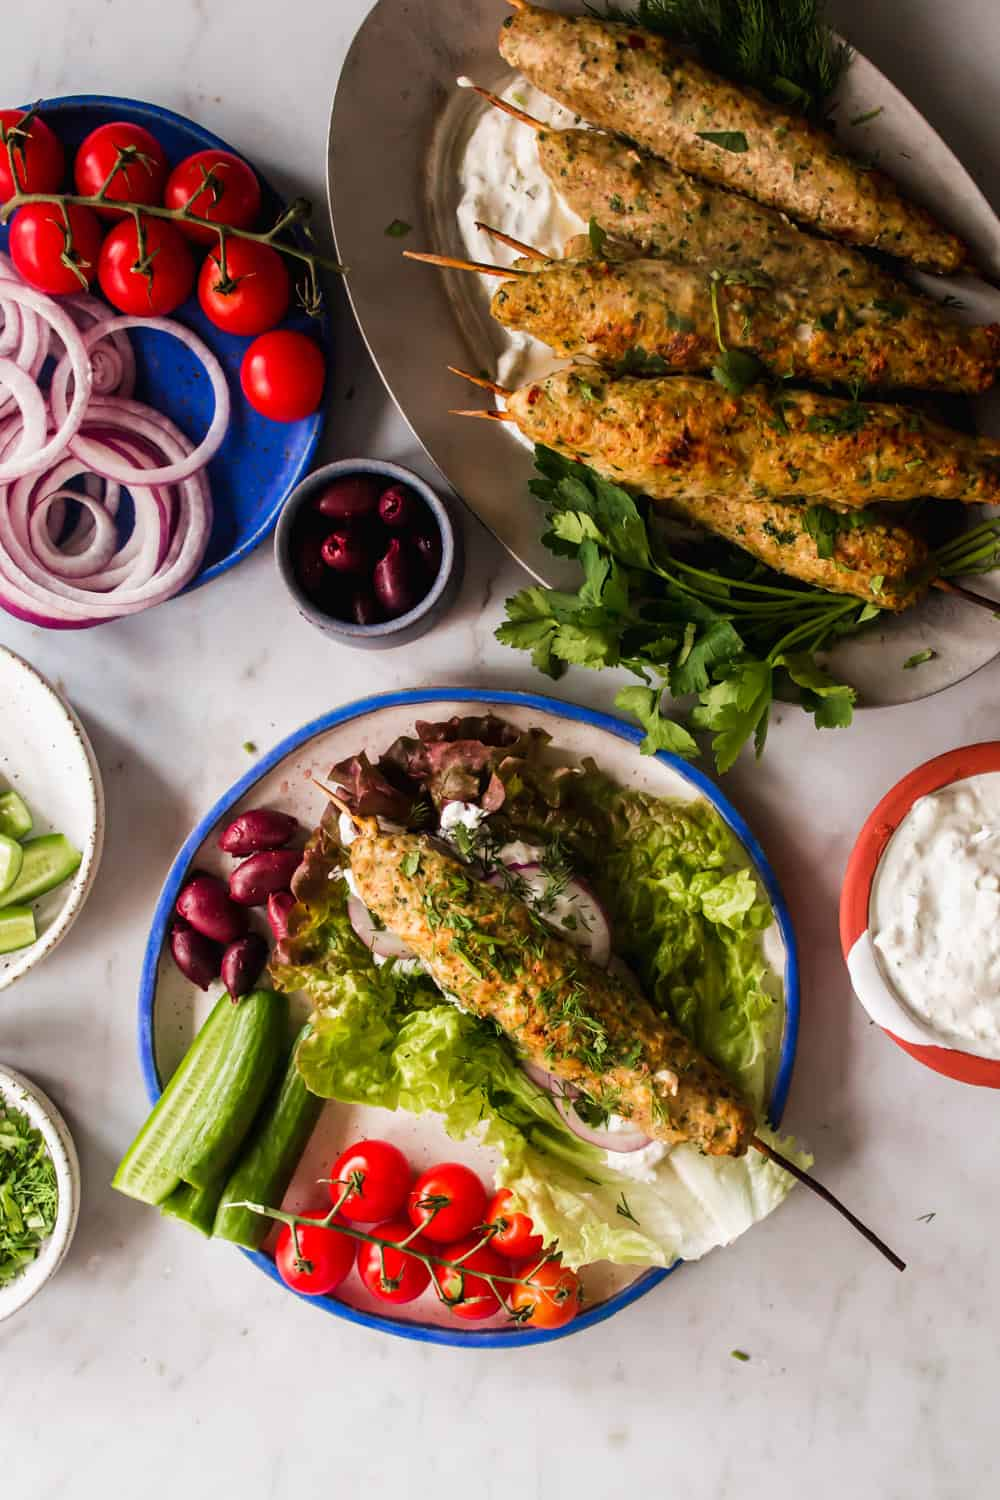 Chicken kebab on a white plate next to a large platter of kebabs and surrounded by lettuce, herbs, and fresh vegetables